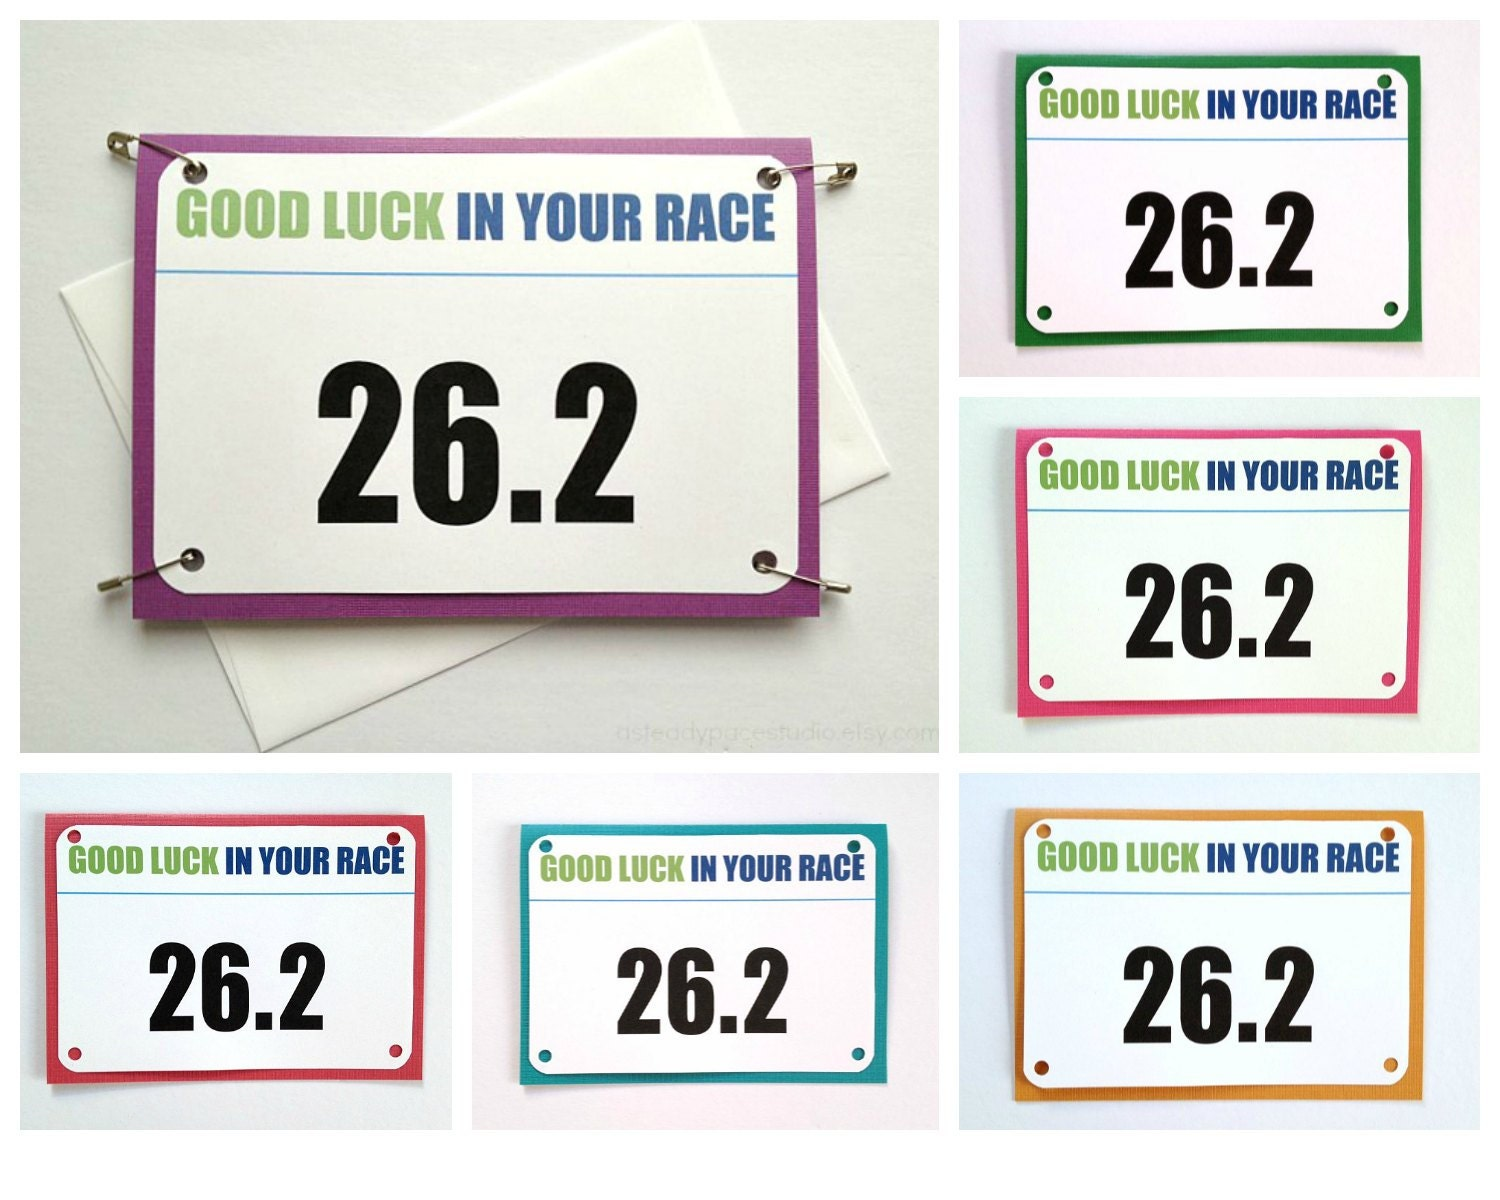 Marathon Good Luck Race Bib